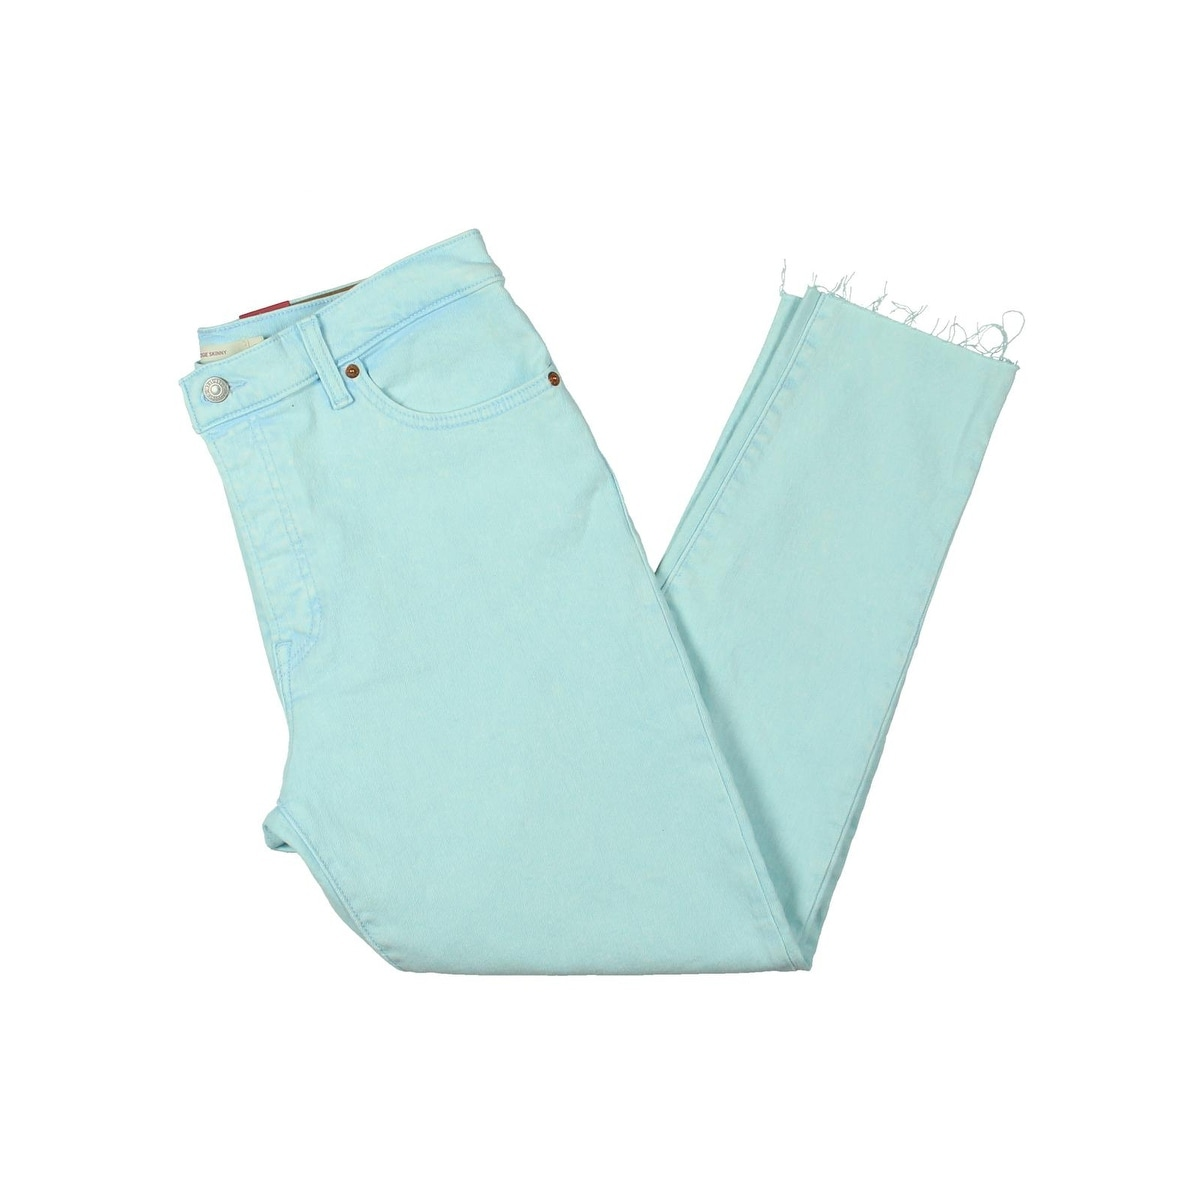 ea5c699471d Shop Levi's Womens Wedgie Colored Skinny Jeans Denim Stone Wash - Free  Shipping On Orders Over $45 - Overstock - 28309354